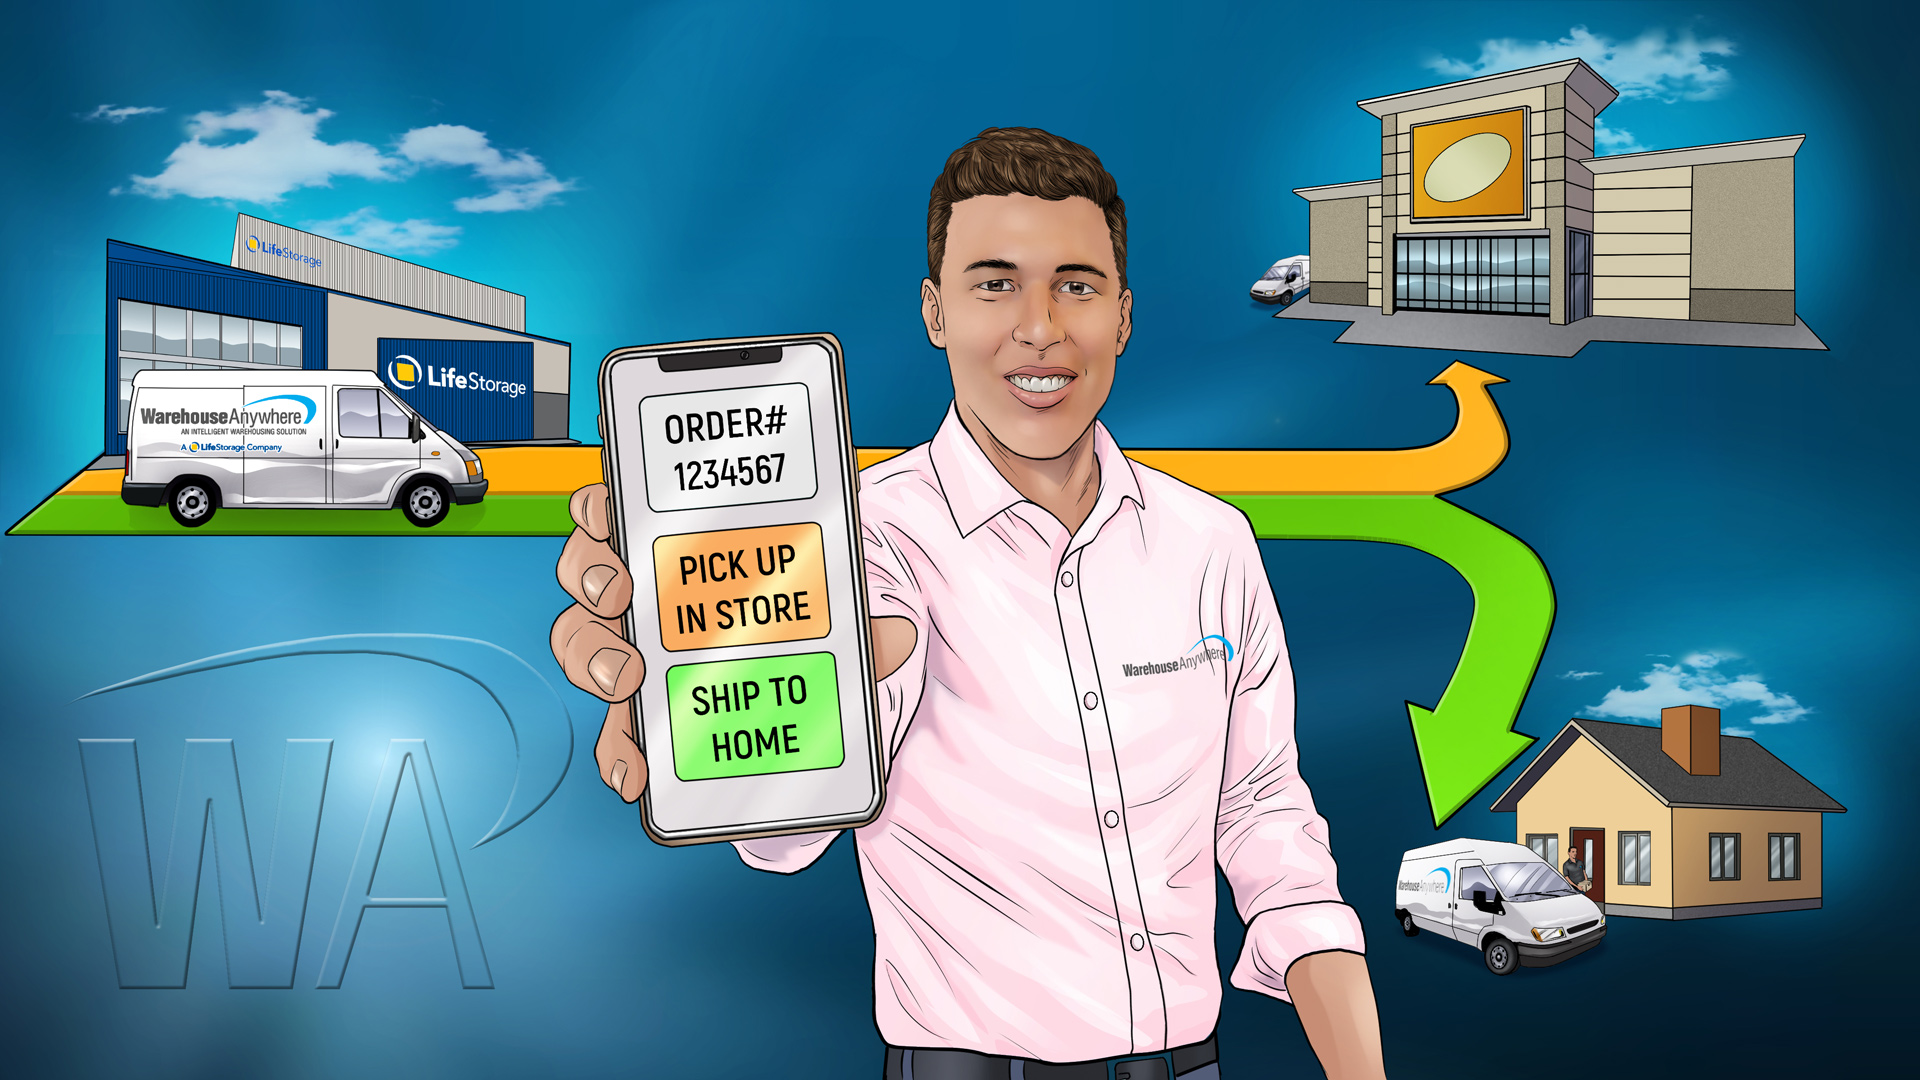 Alex holding a mobile phone with options for in-store pickup or home delivery. In the background, the Warehouse Anywhere van is making a delivery to a store and to a home